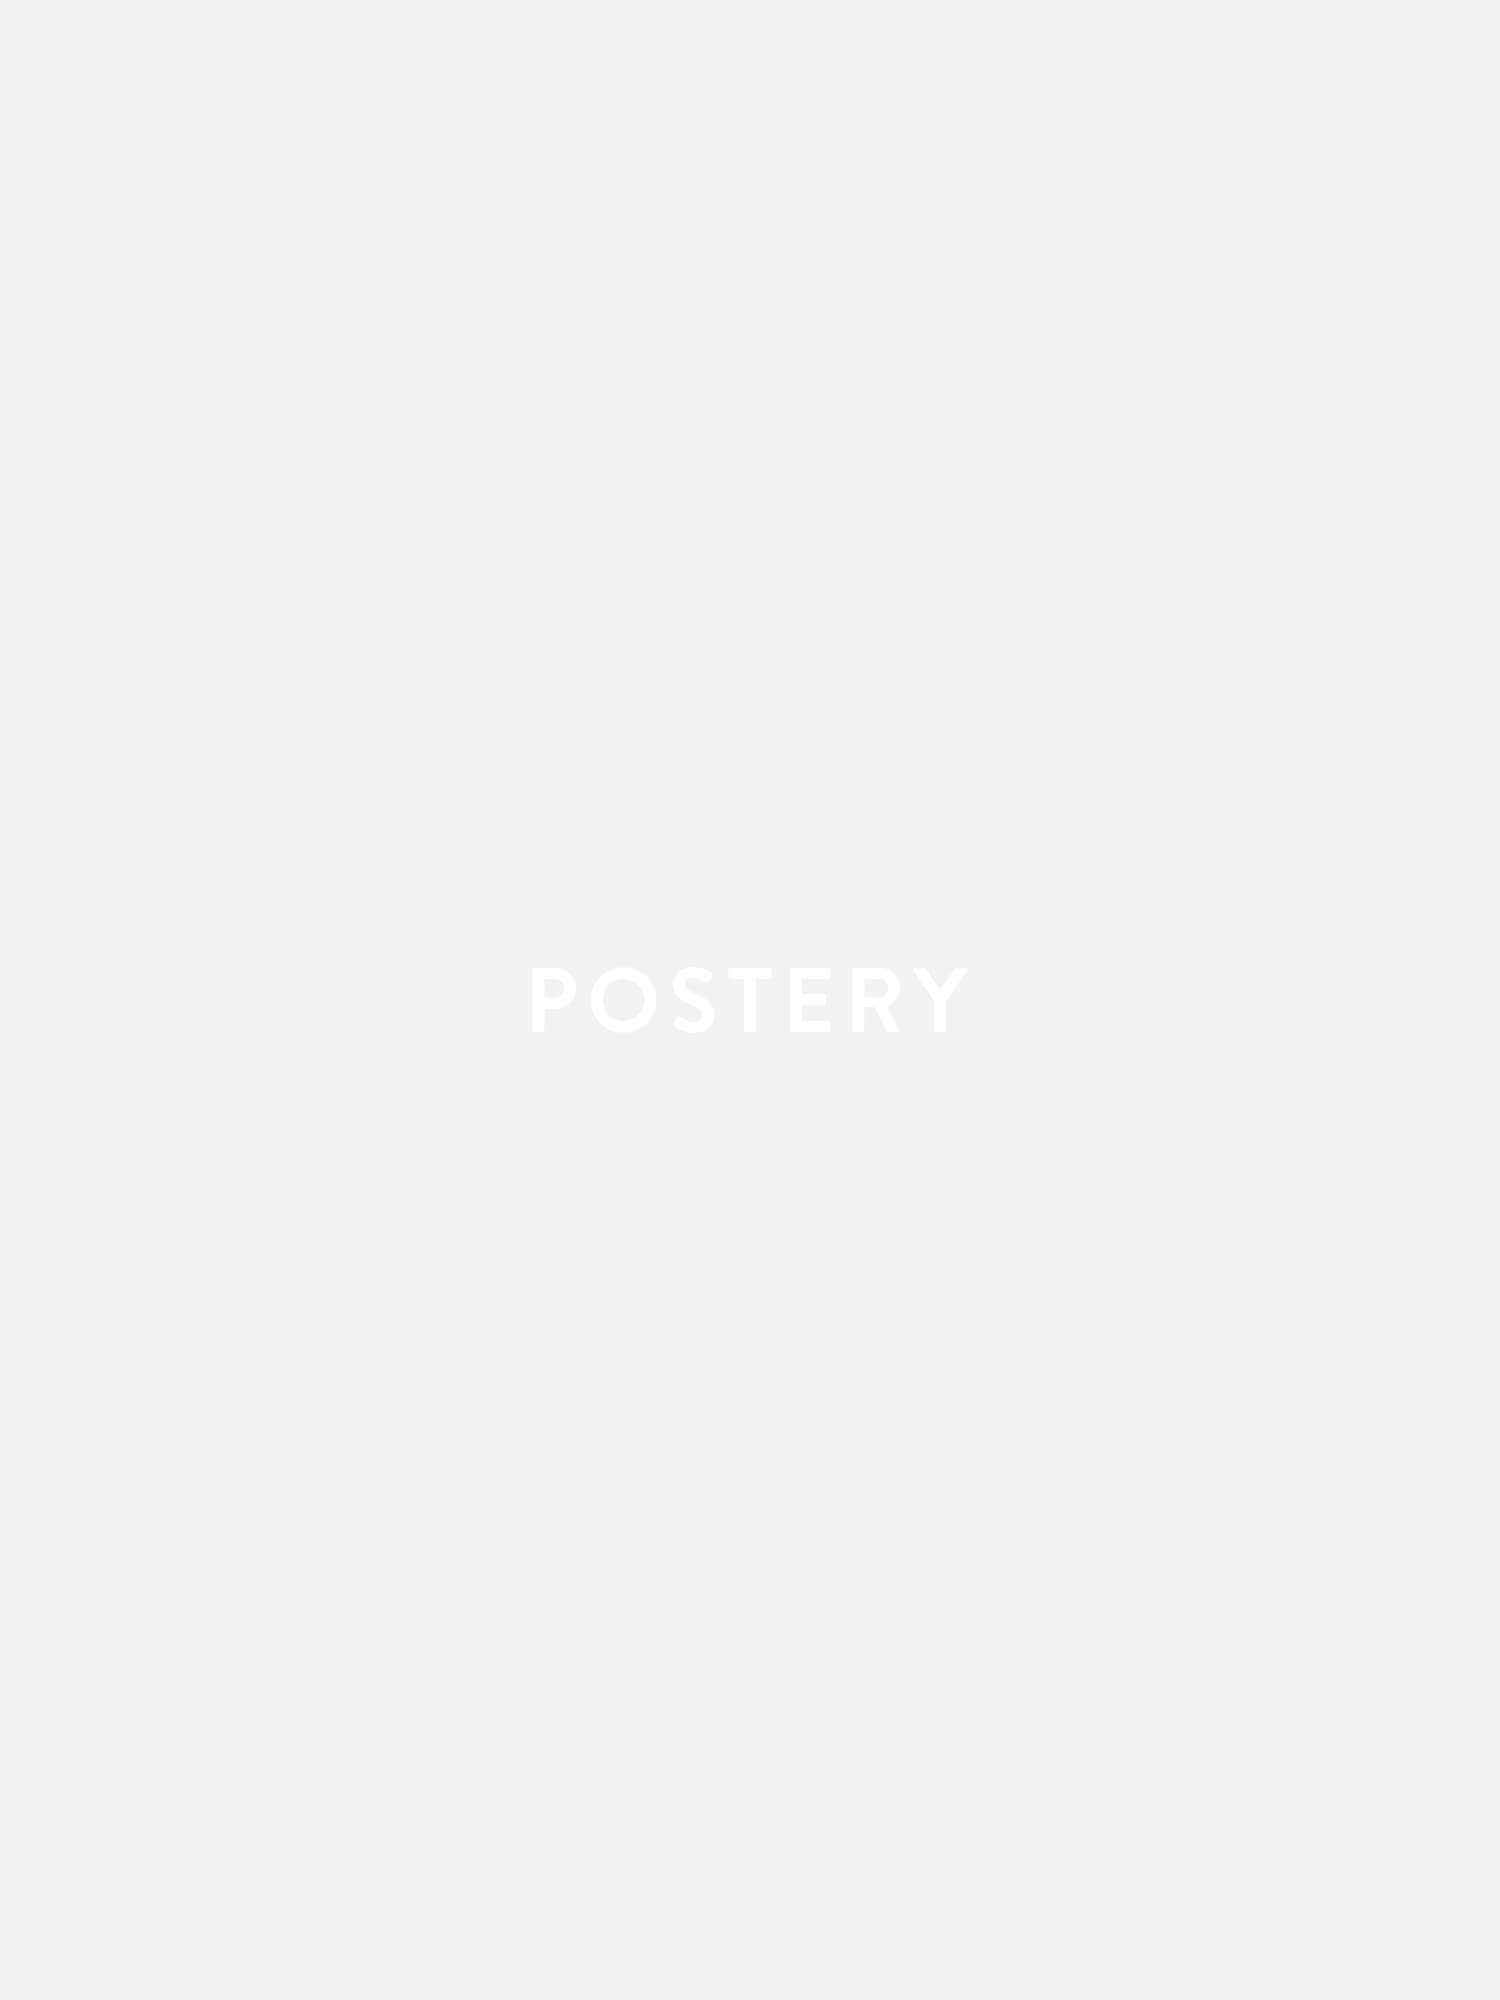 Mystical Forest Poster